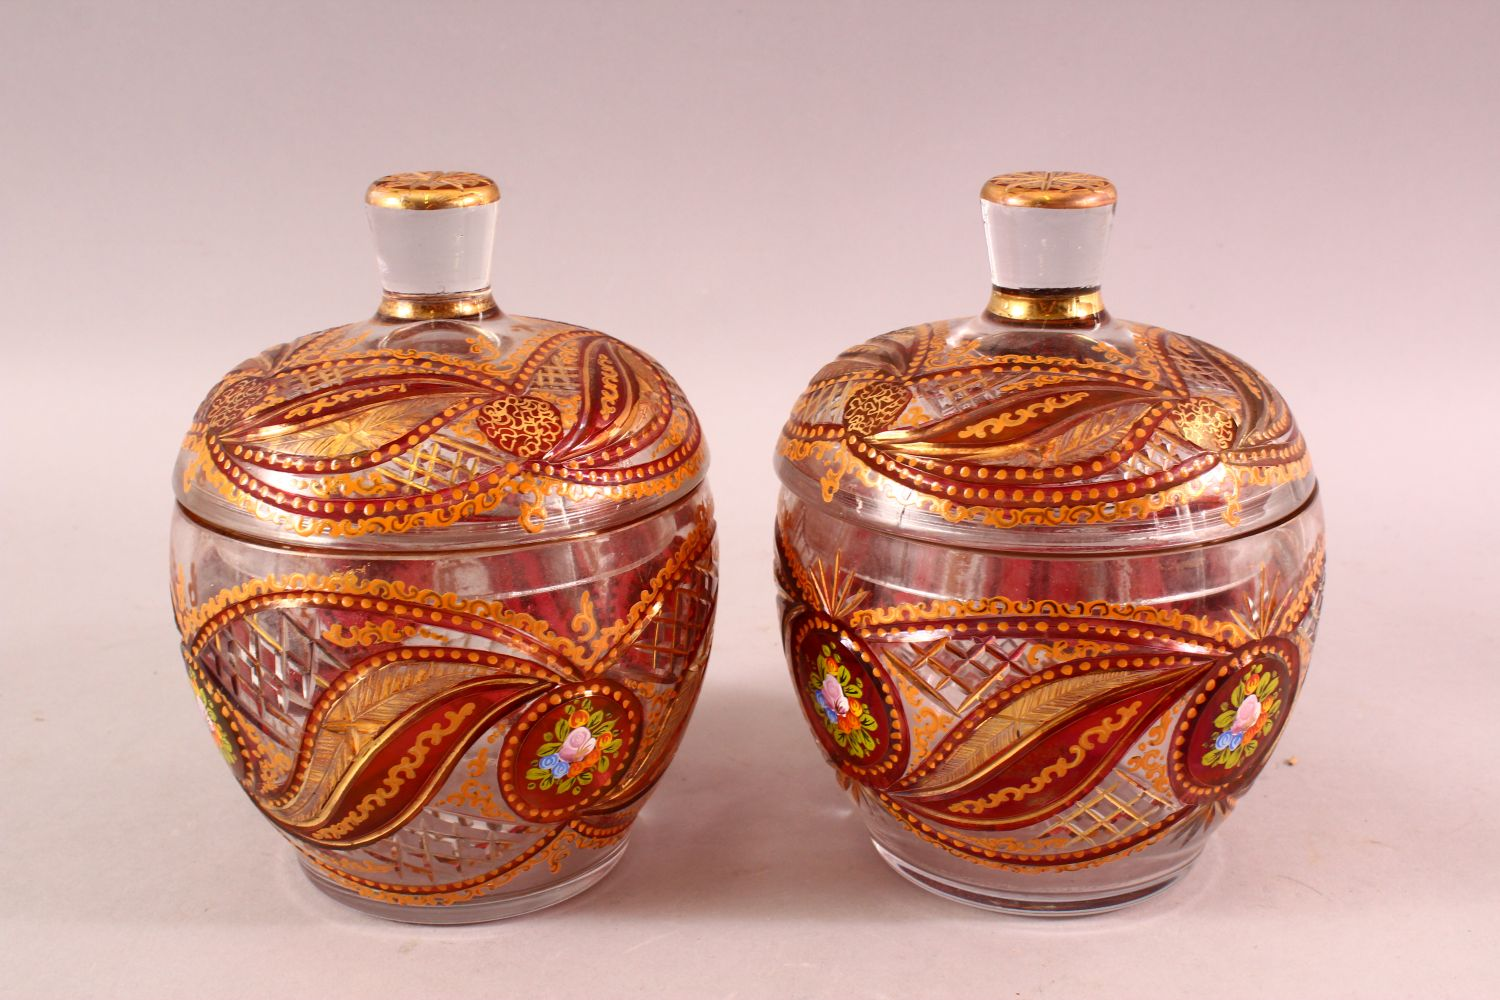 A PAIR OF BOHEMIAN RED ENAMELLED GLASS JARS, each with enamel and gilt work, 20cm each - Image 2 of 4